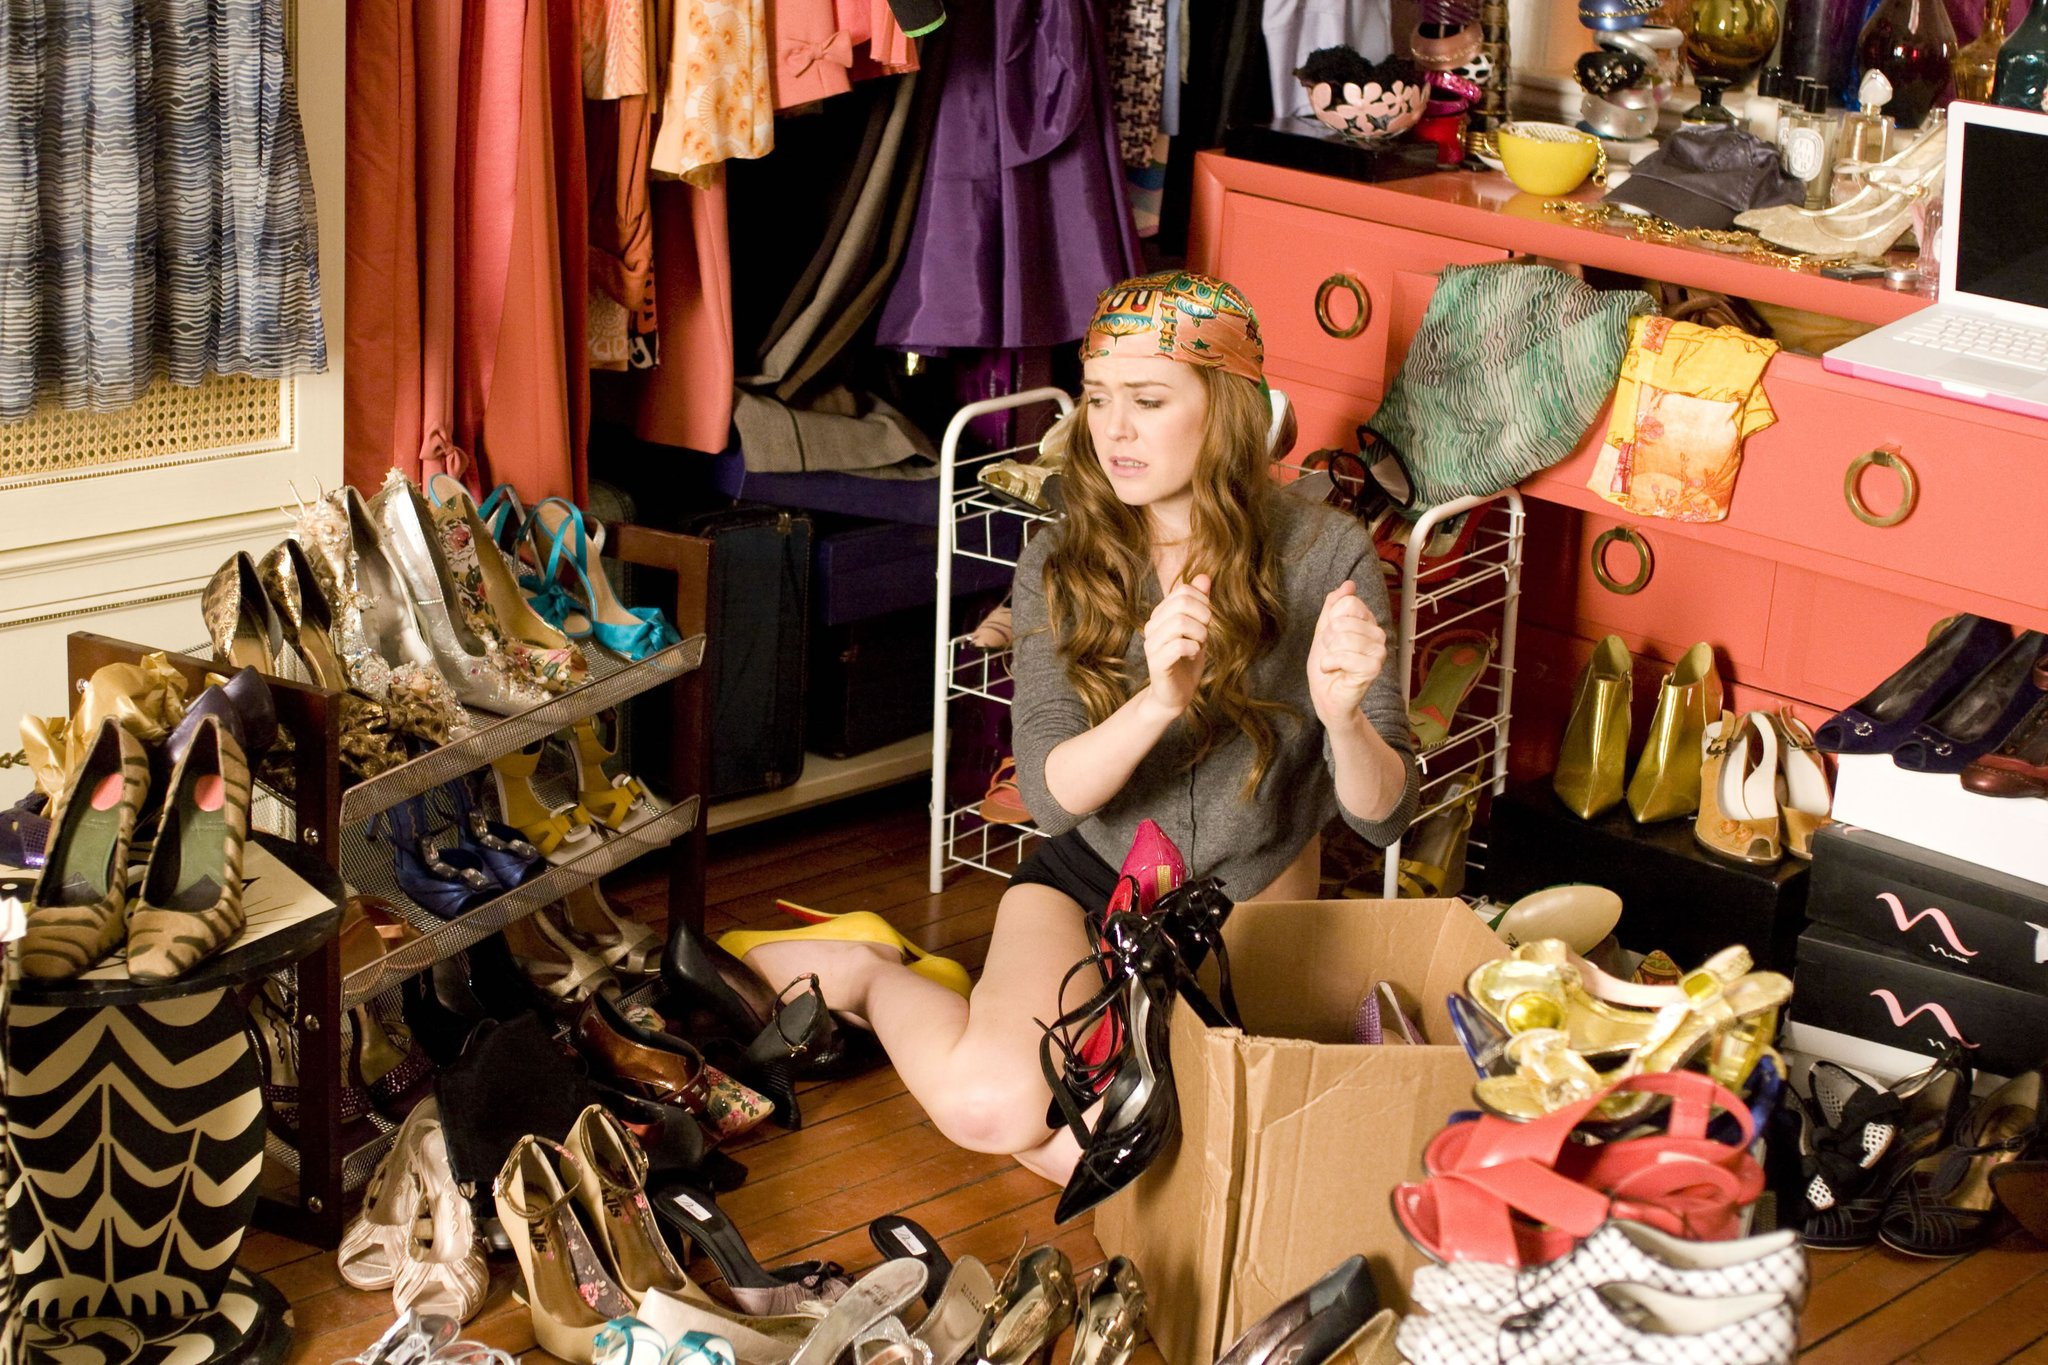 Interview Costume Designer Patricia Field About Confessions Shopaholic 2009 02 11 080022